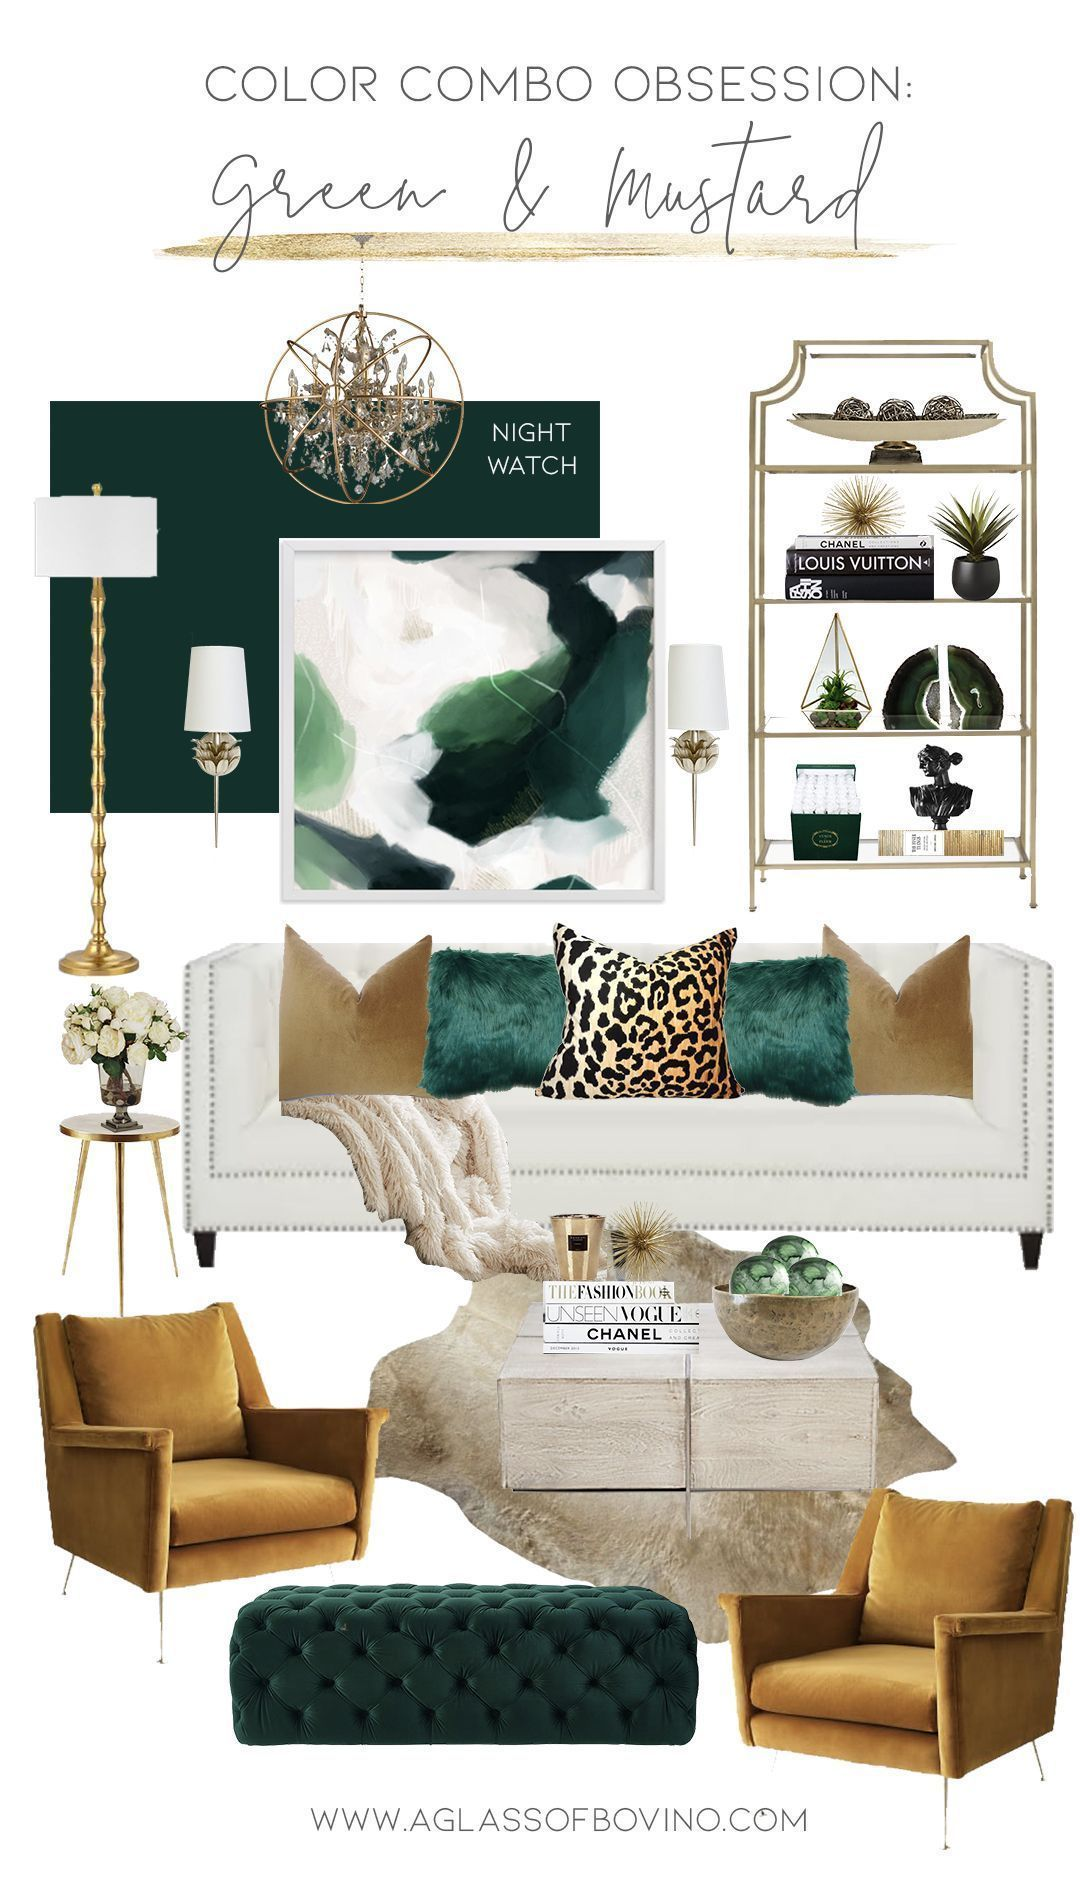 Color Combo Obsessed I Designing A Glam Room With Dark Green Mustard And Gold Accents Bestlaminate In 2020 Gold Living Room Green Living Room Decor Living Room Green